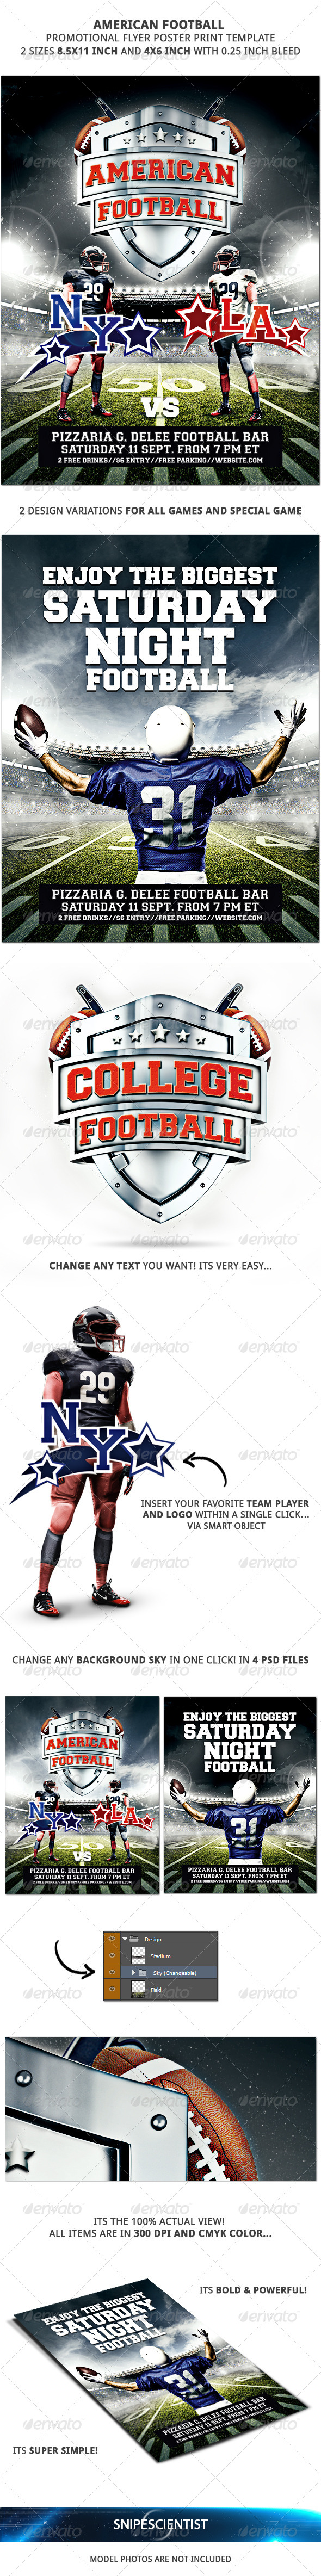 American Football Promotional Flyer Poster 2 Sizes